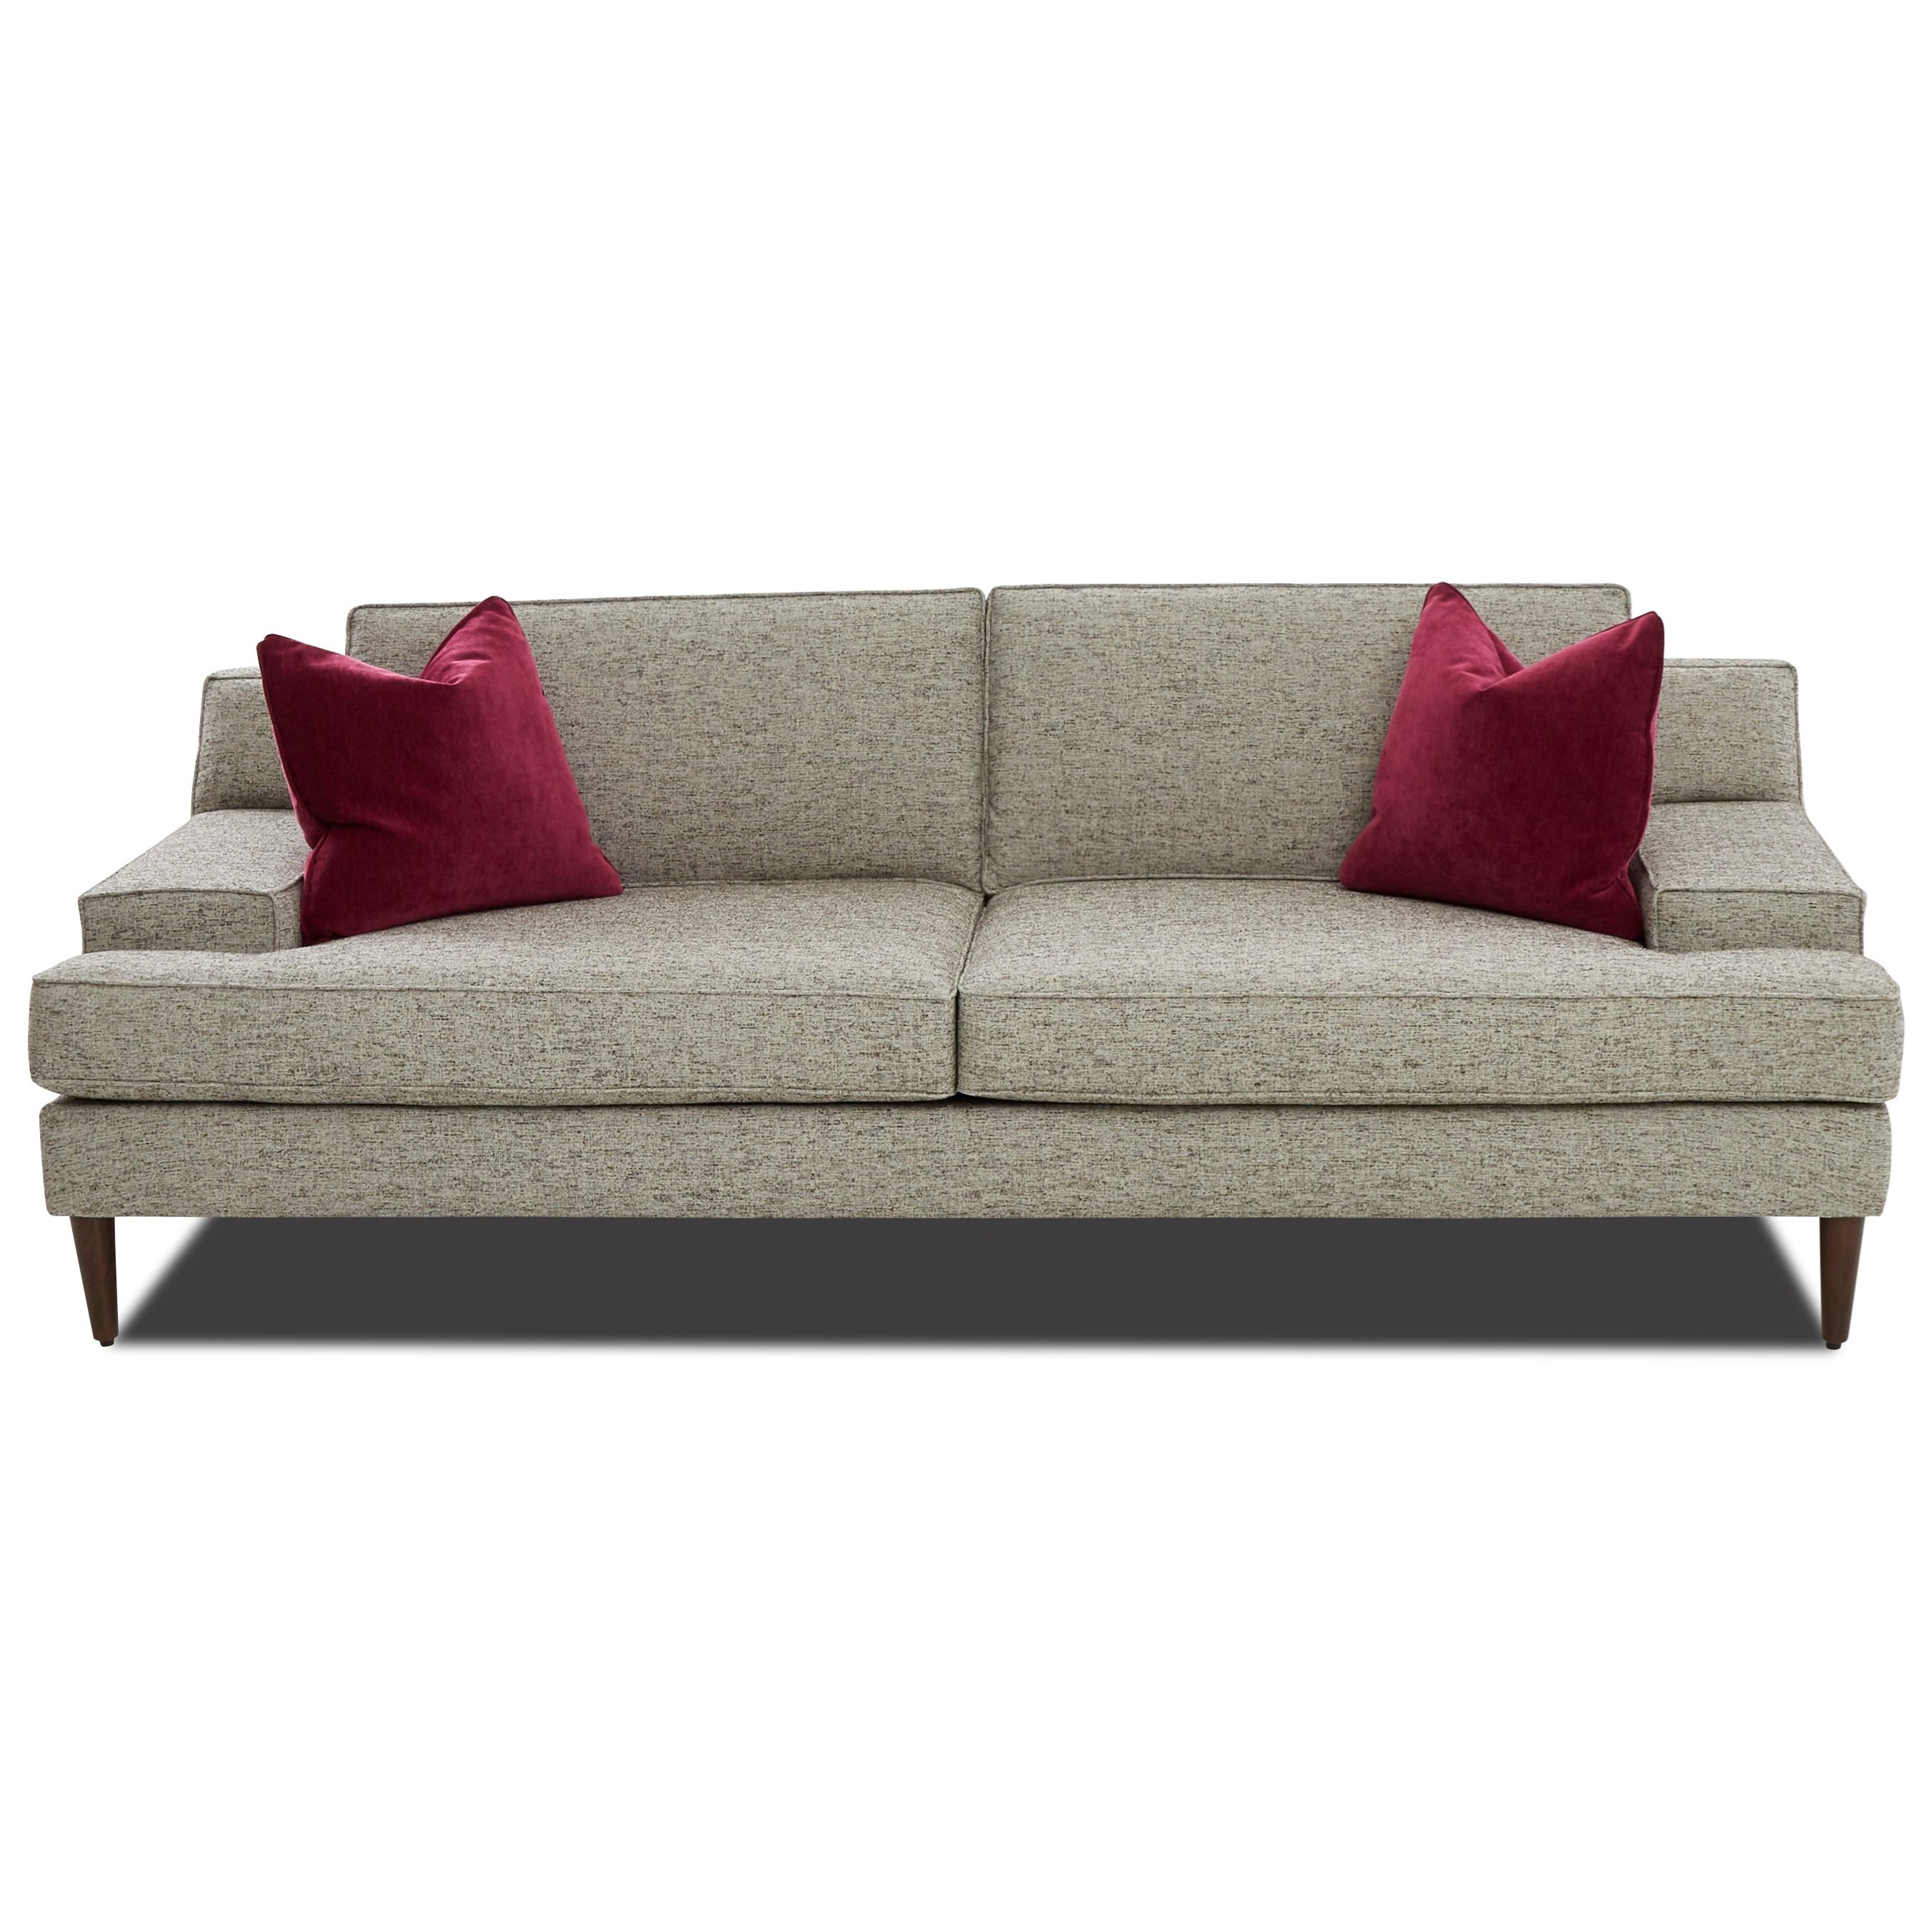 Mid-Century Modern Sofa with Wide Track Arms